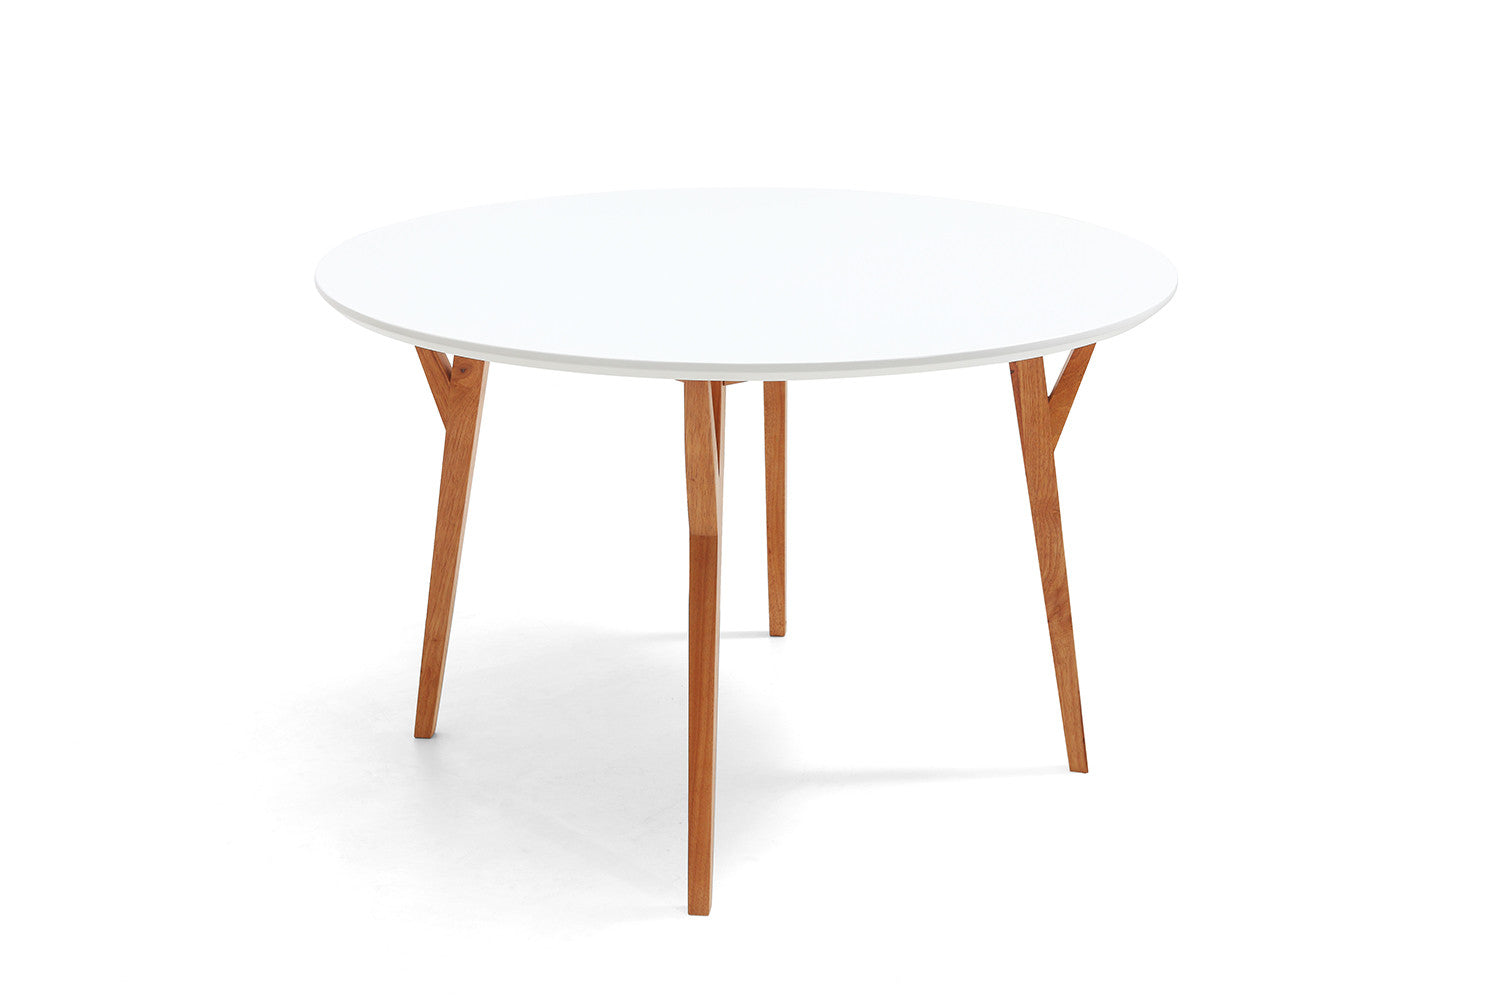 Table de salle manger ronde design scandinave moesa for Table a manger ronde bois